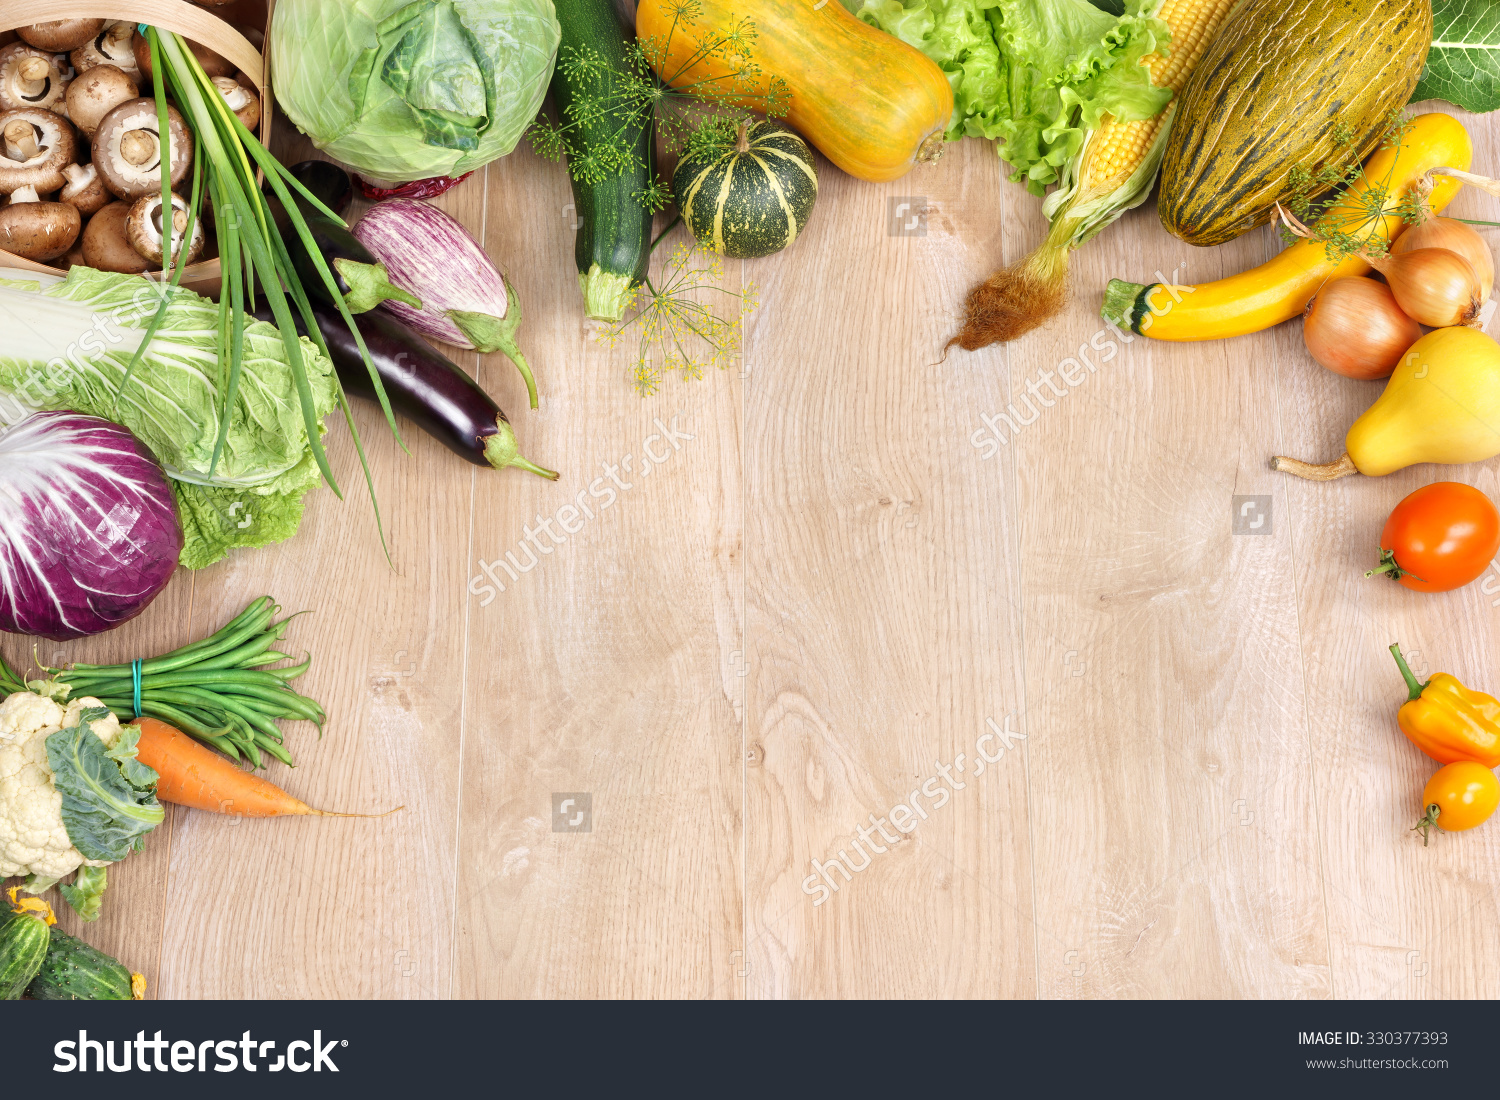 Food background studio photo of different fruits and vegetables - Stock Photo Healthy Foods Background High Resolution Product